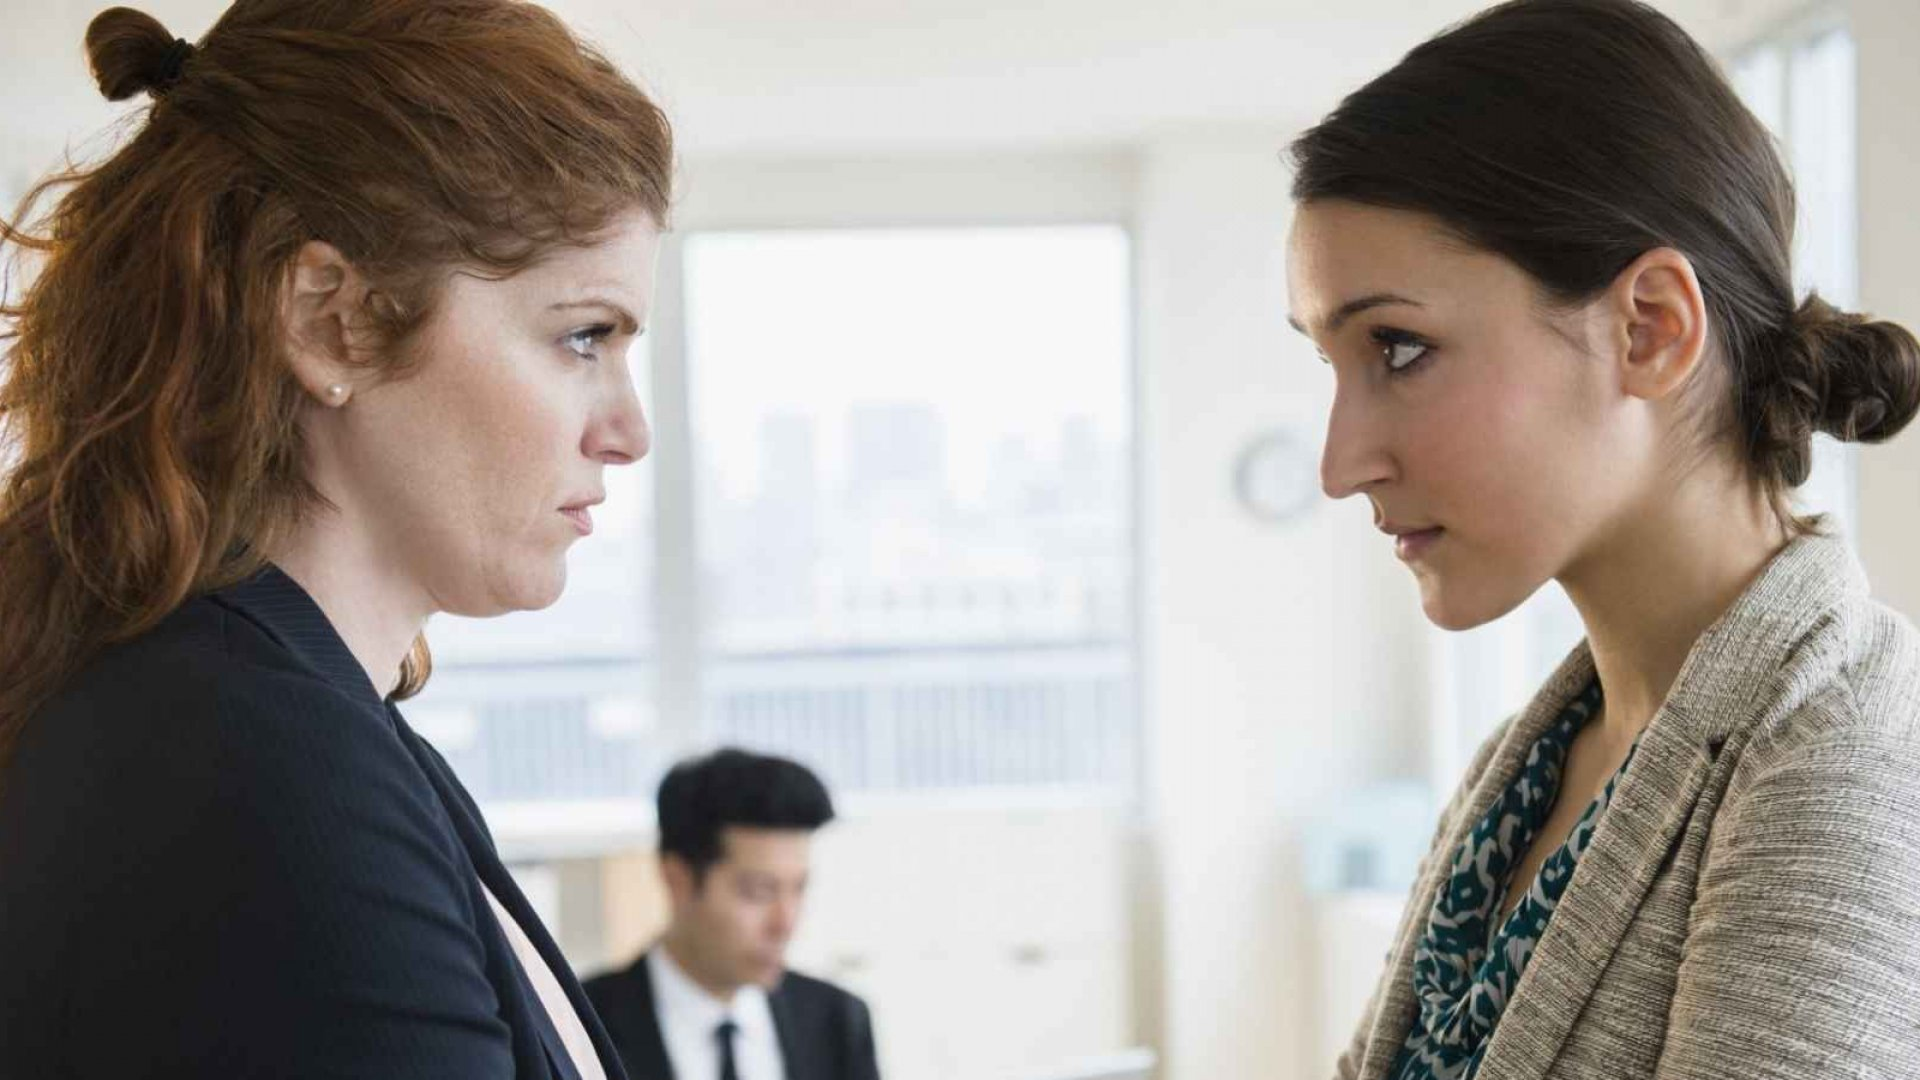 25 Phrases That Kill Workplace Relationships